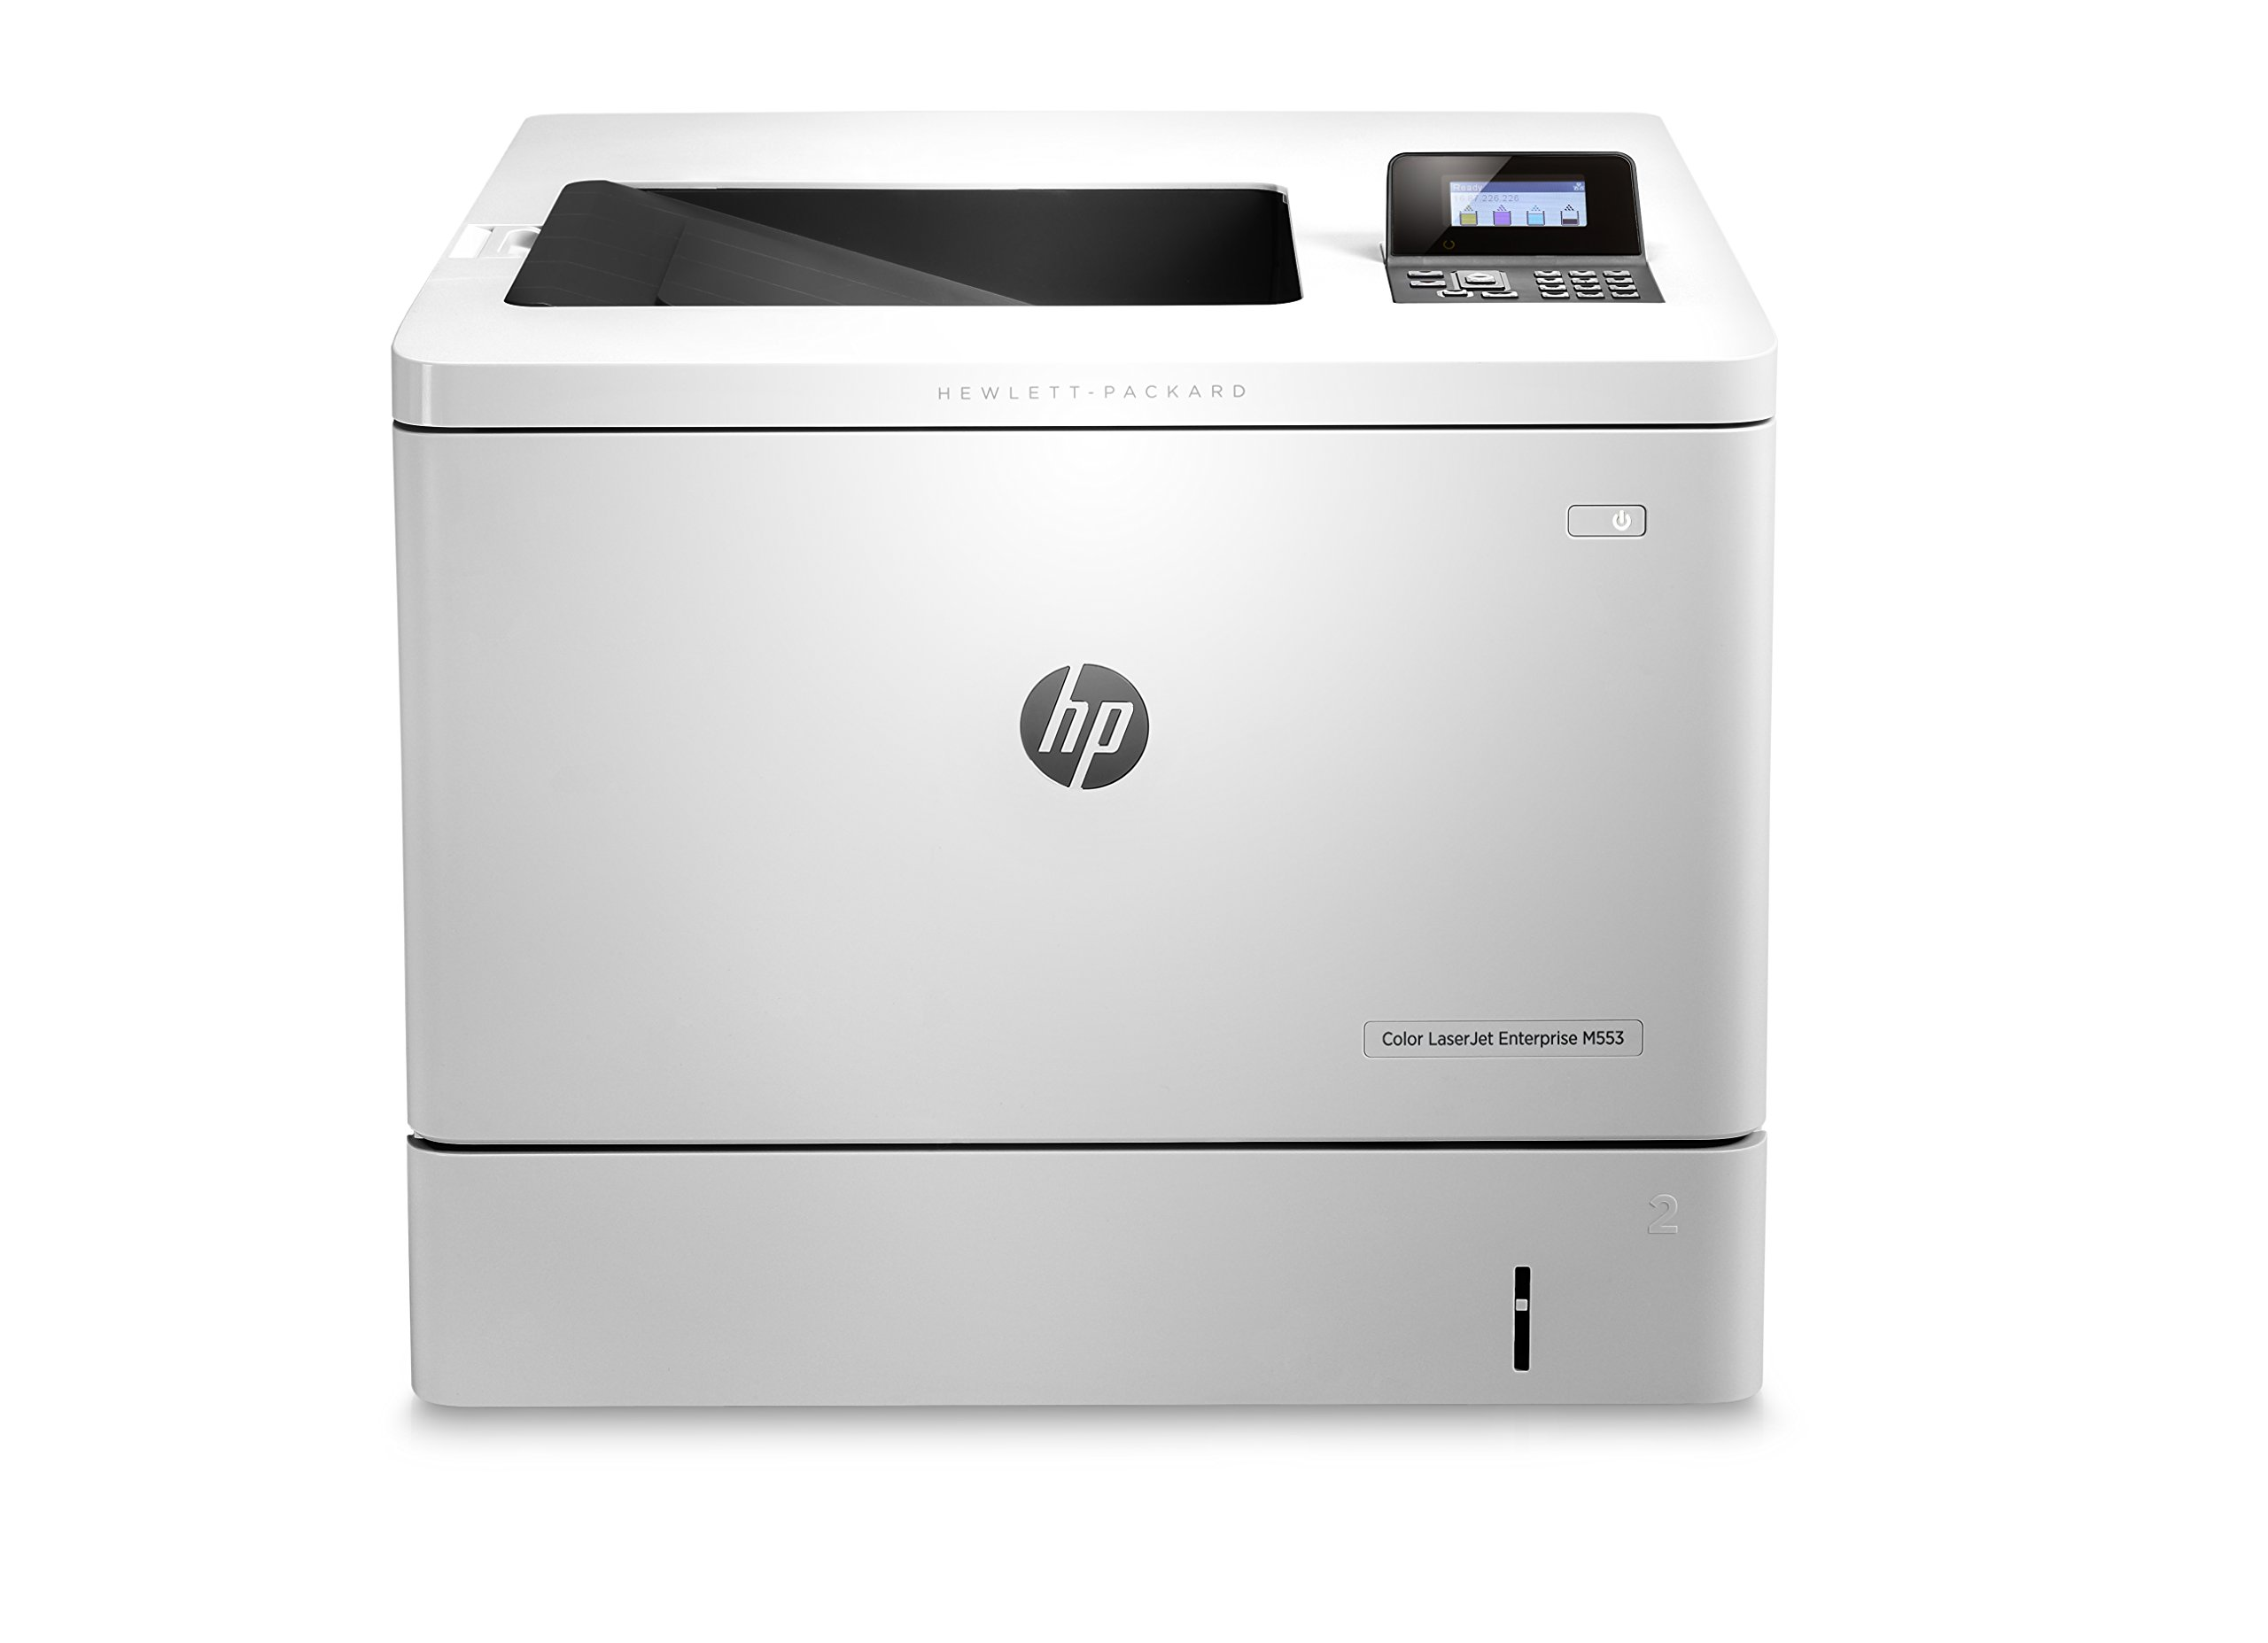 HP LaserJet Enterprise M553n Color Laser Printer with Built-in Ethernet (B5L24A)